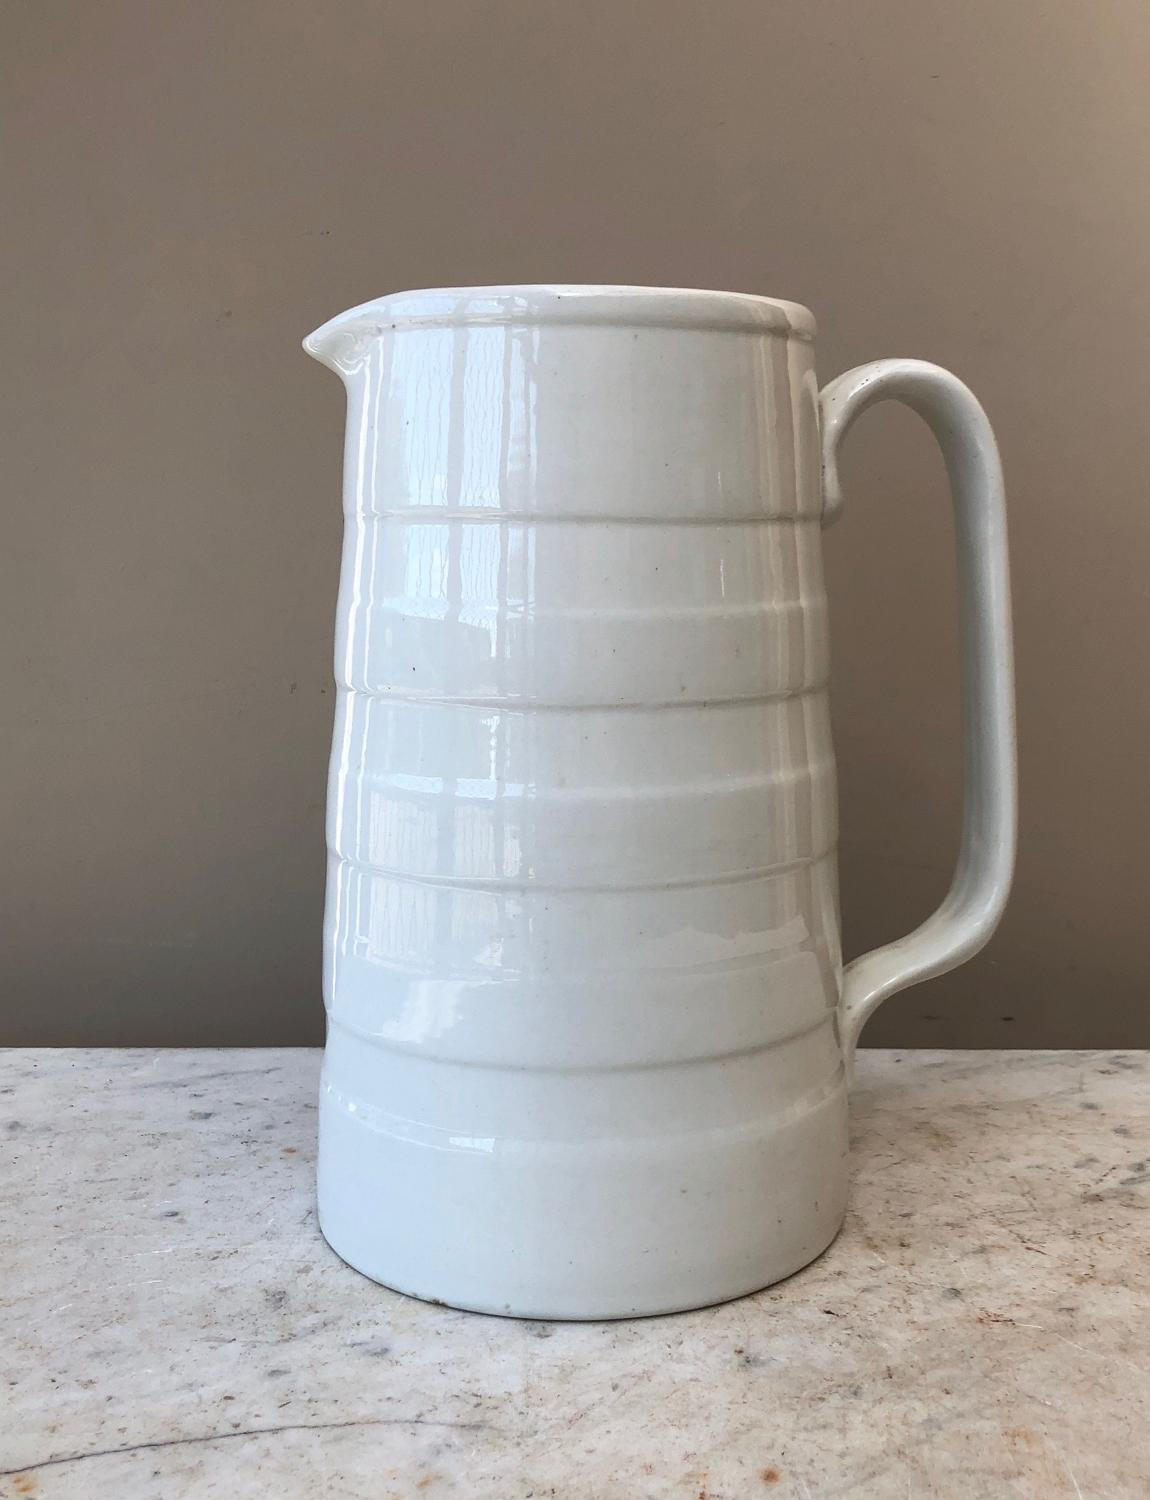 Superb Large Edwardian White Banded Dairy Cream Jug